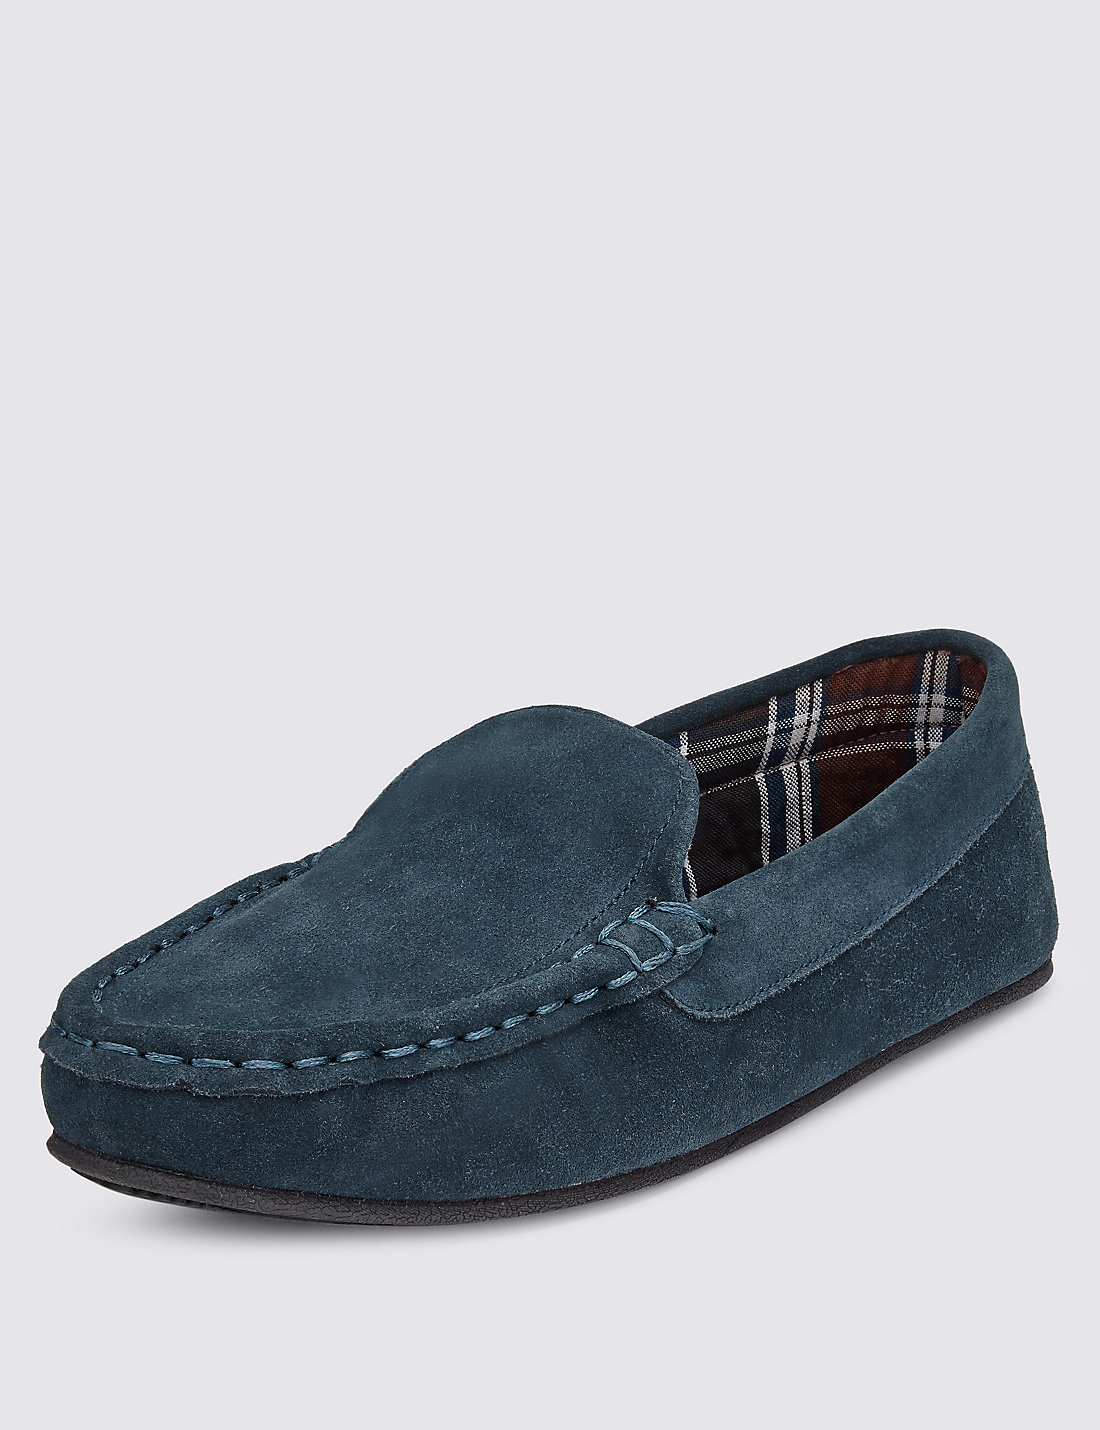 Mens jacket marks and spencer - Suede Moccasin Slippers With Thinsulate Trade M S Collection